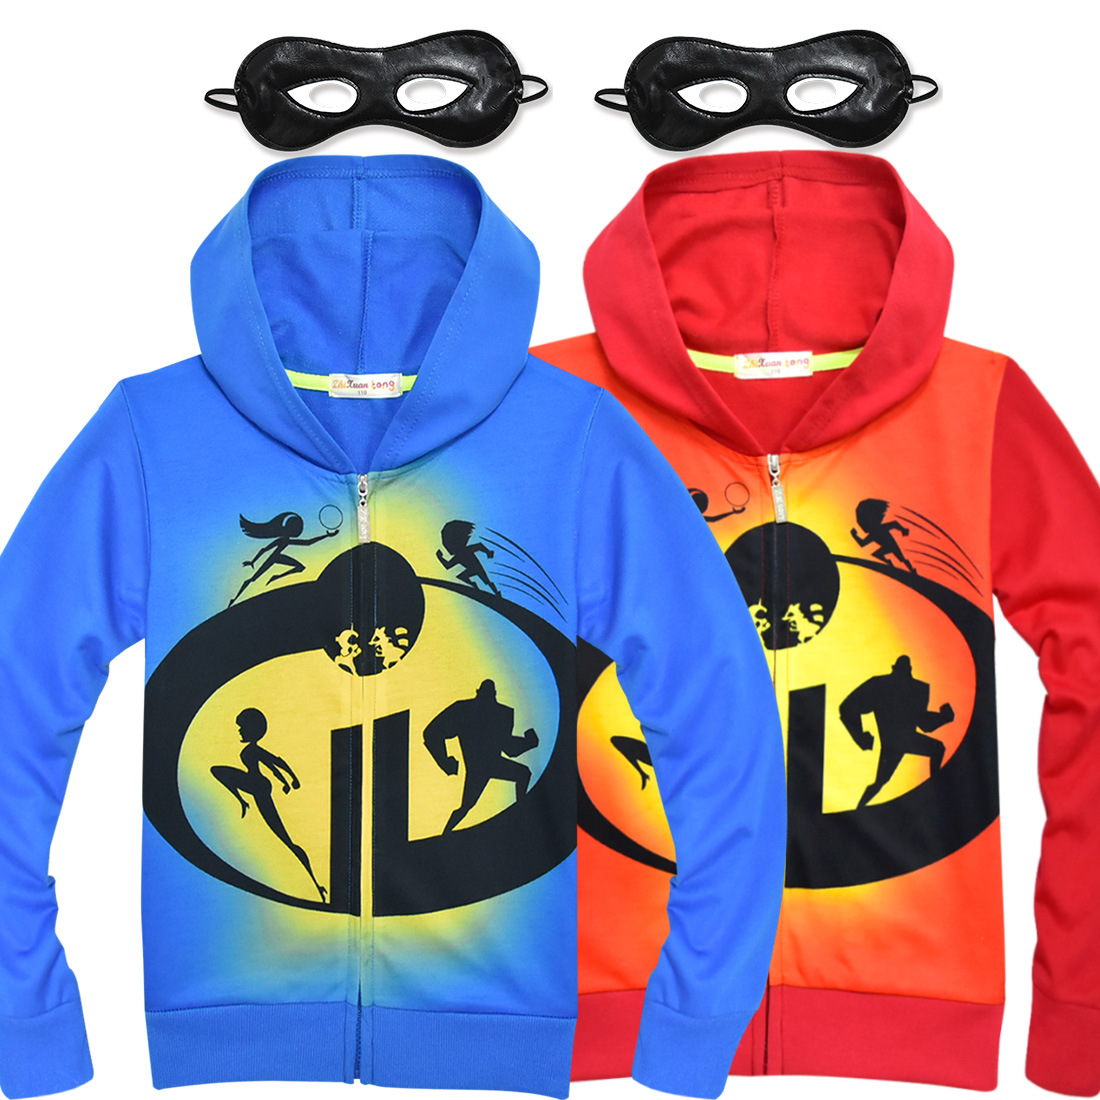 The Incredibles 2 Hoodie Kids Child Cartoon Sweatshirt Boy's Girl's Top Outwear Coat Halloween Superhero Party Cosplay Costume